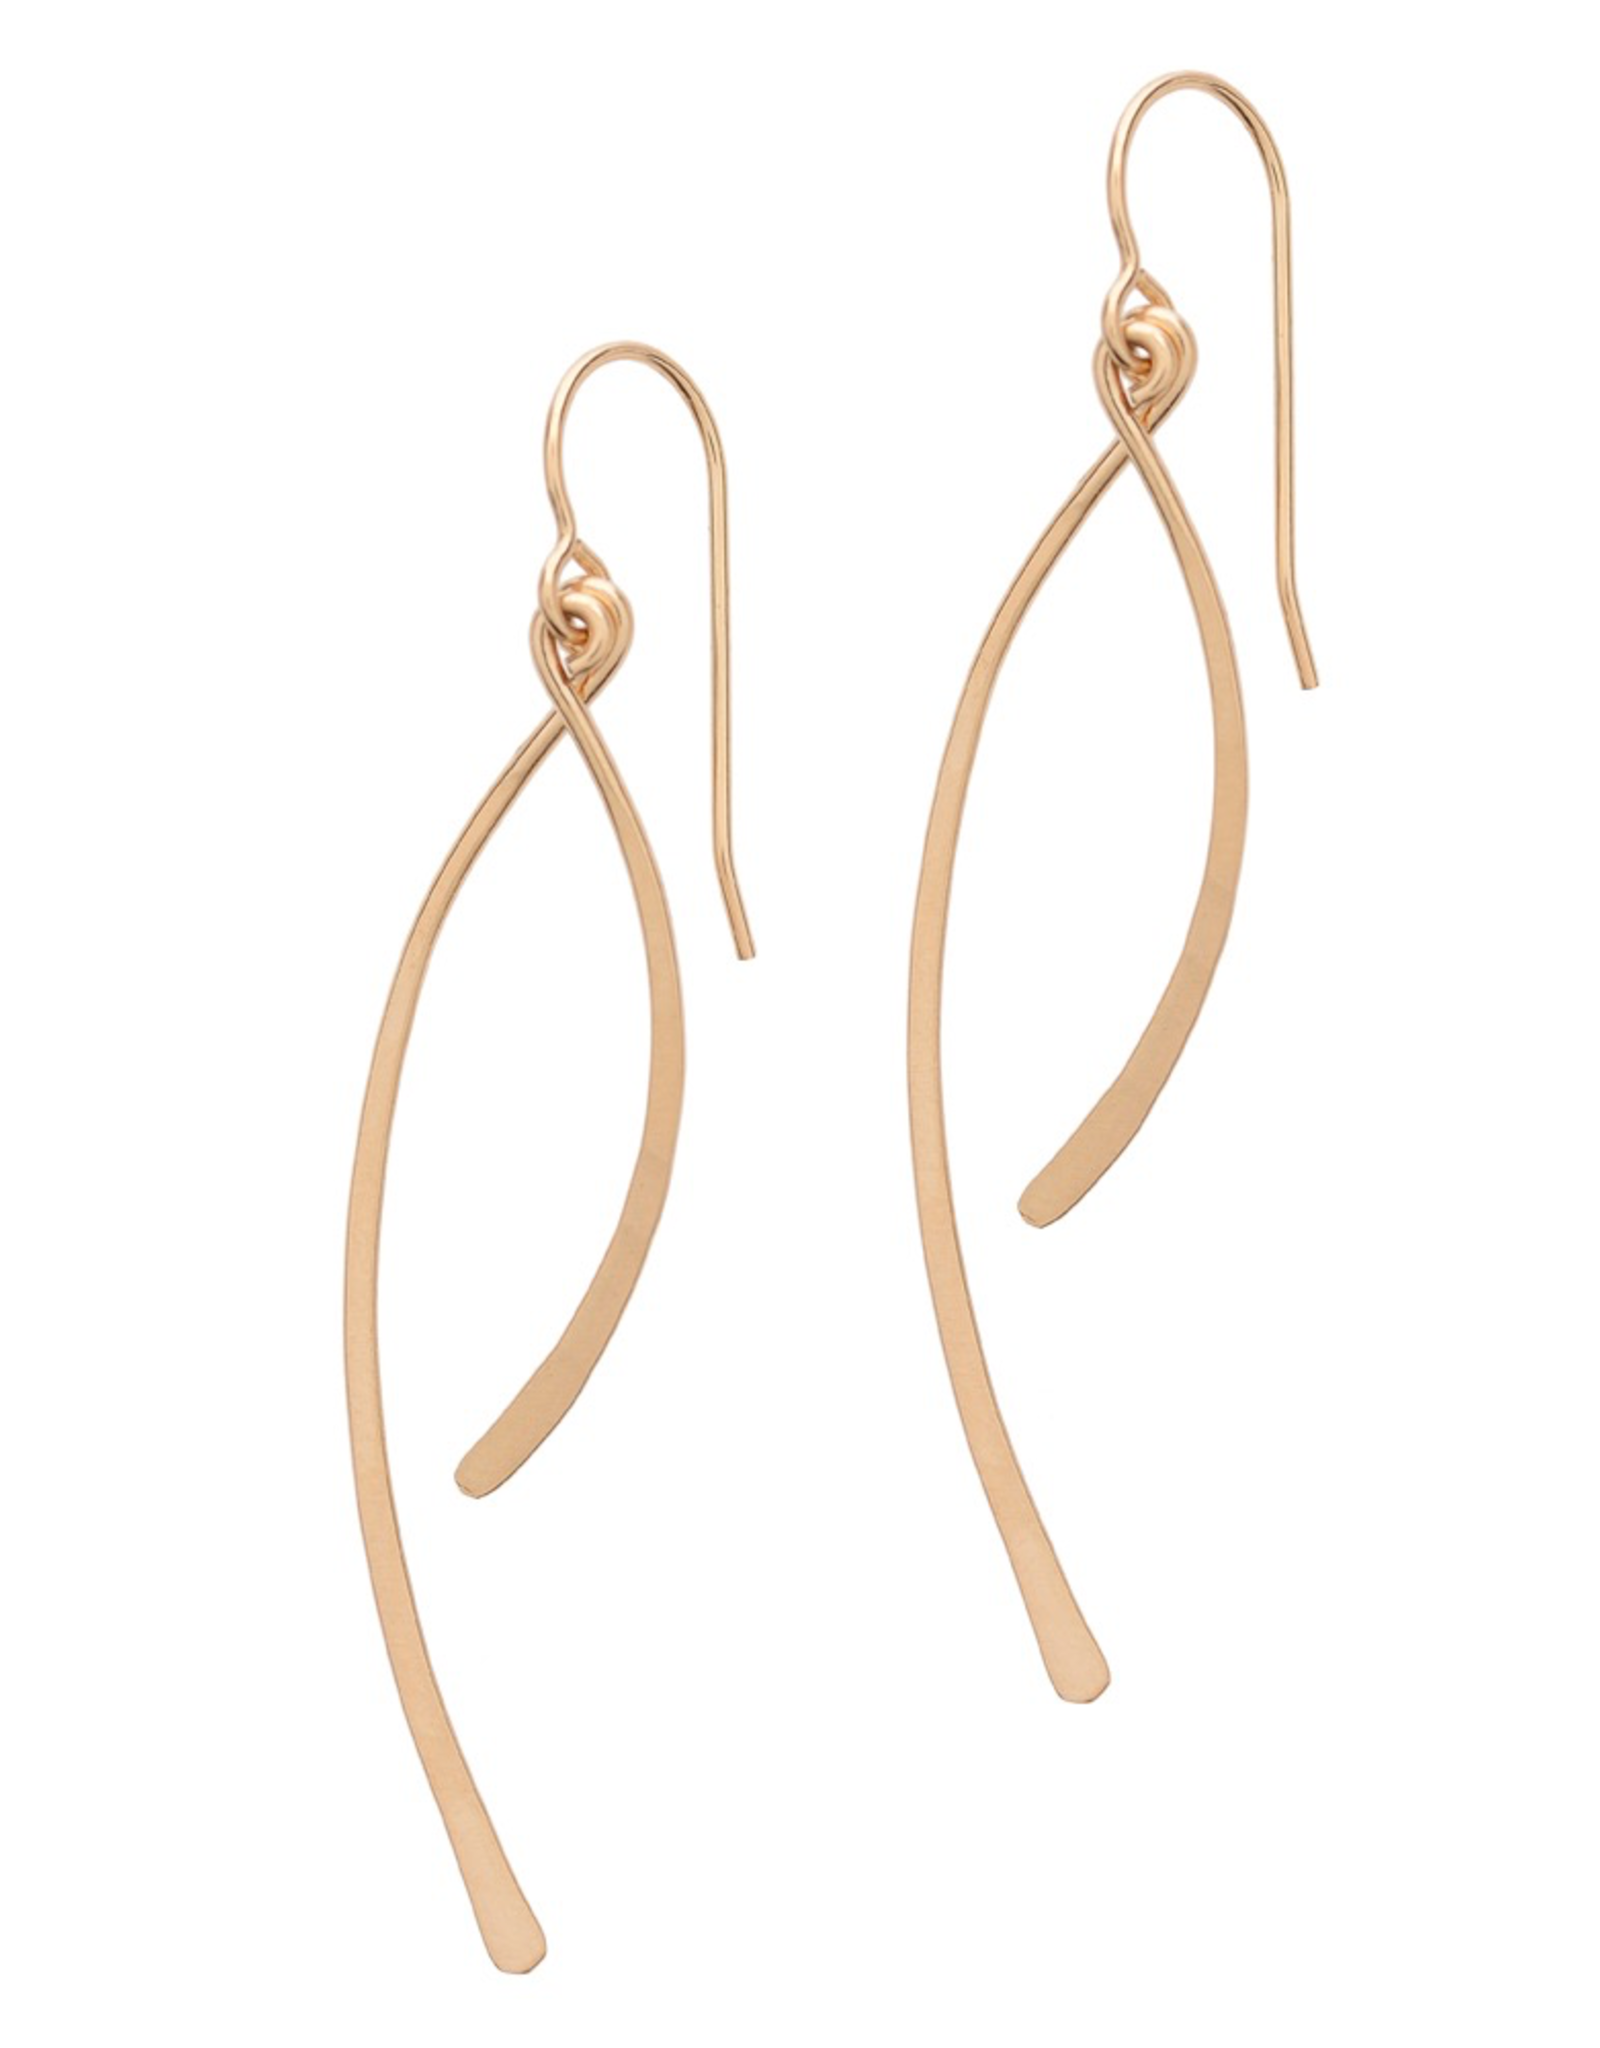 Handmade Earrings with 14k goldfill curve bar drops